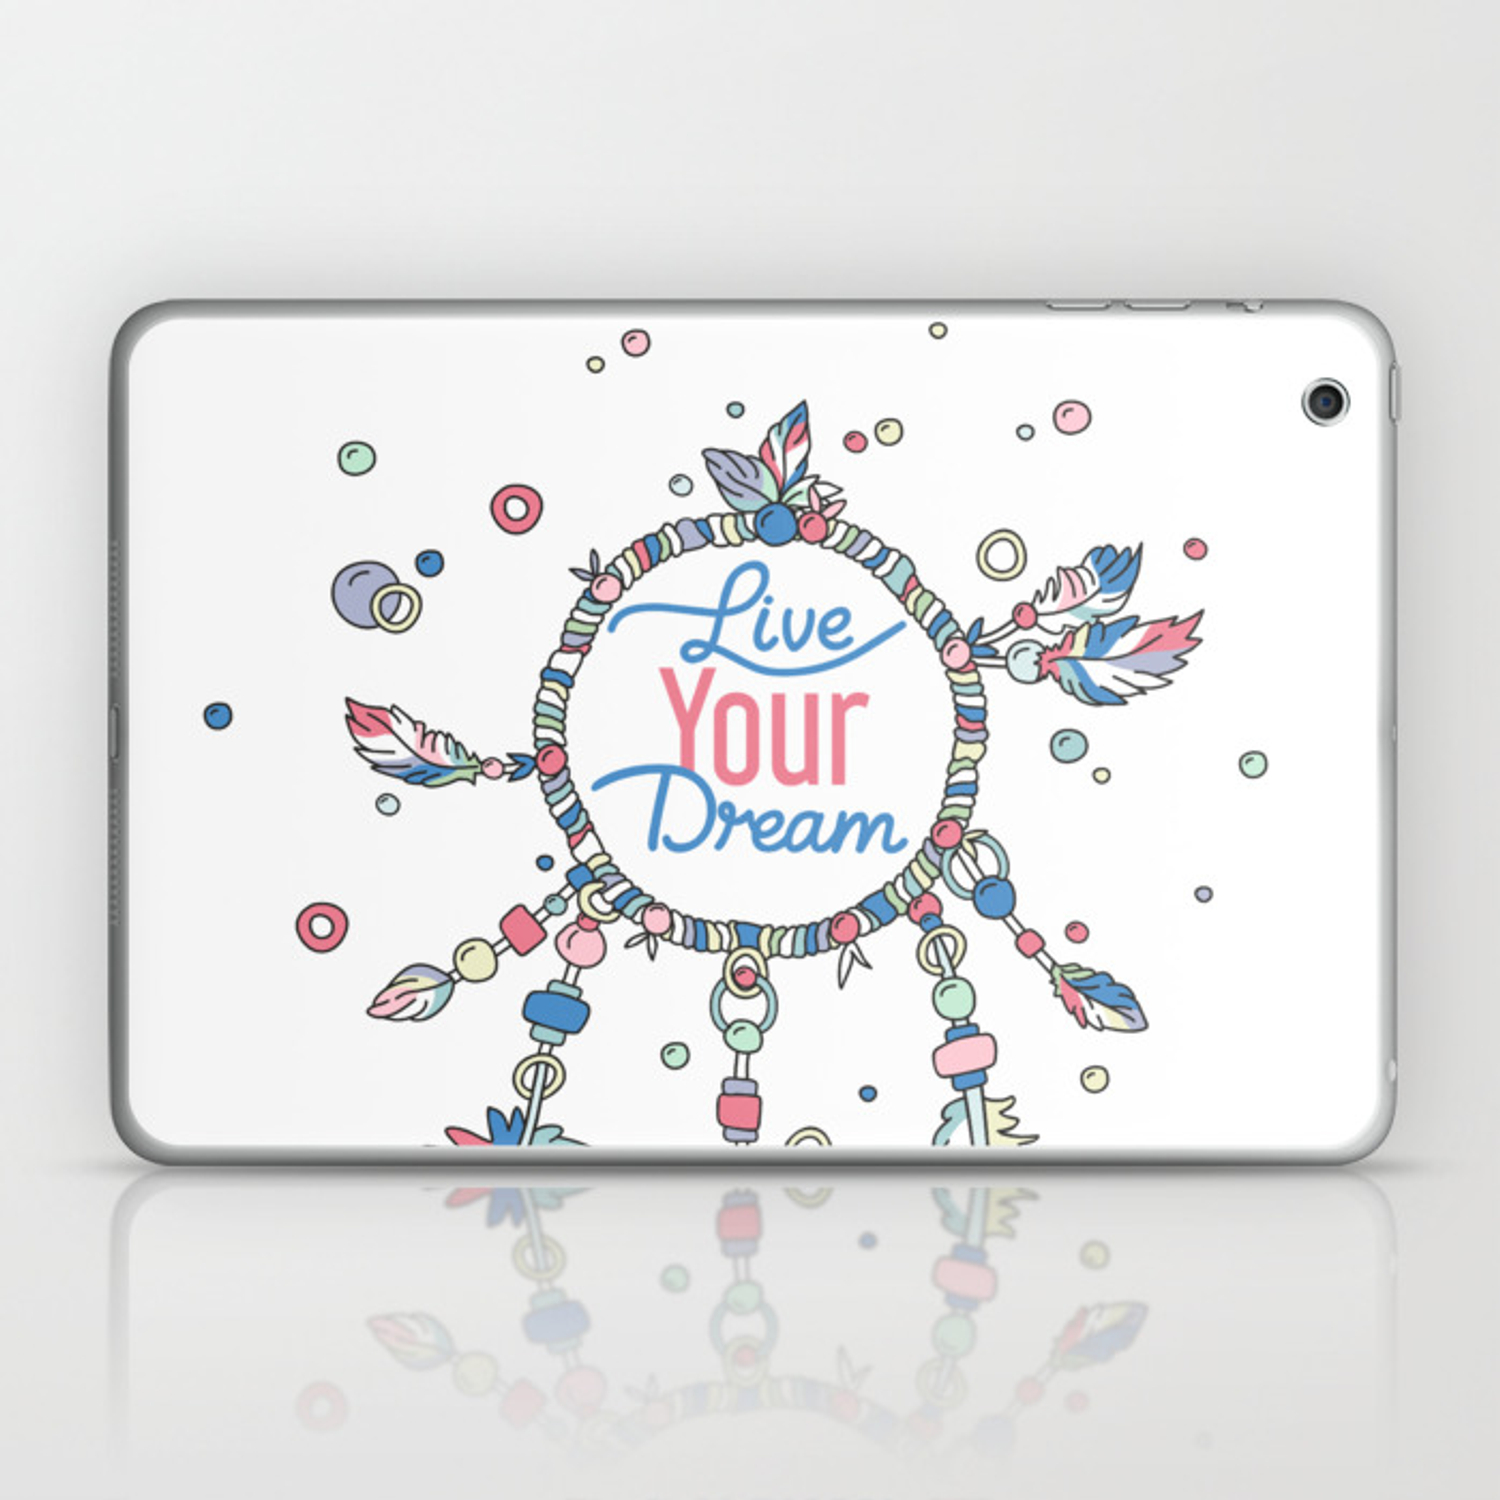 - Live Your Dream Dream Catcher - Pastel Colors Laptop & IPad Skin